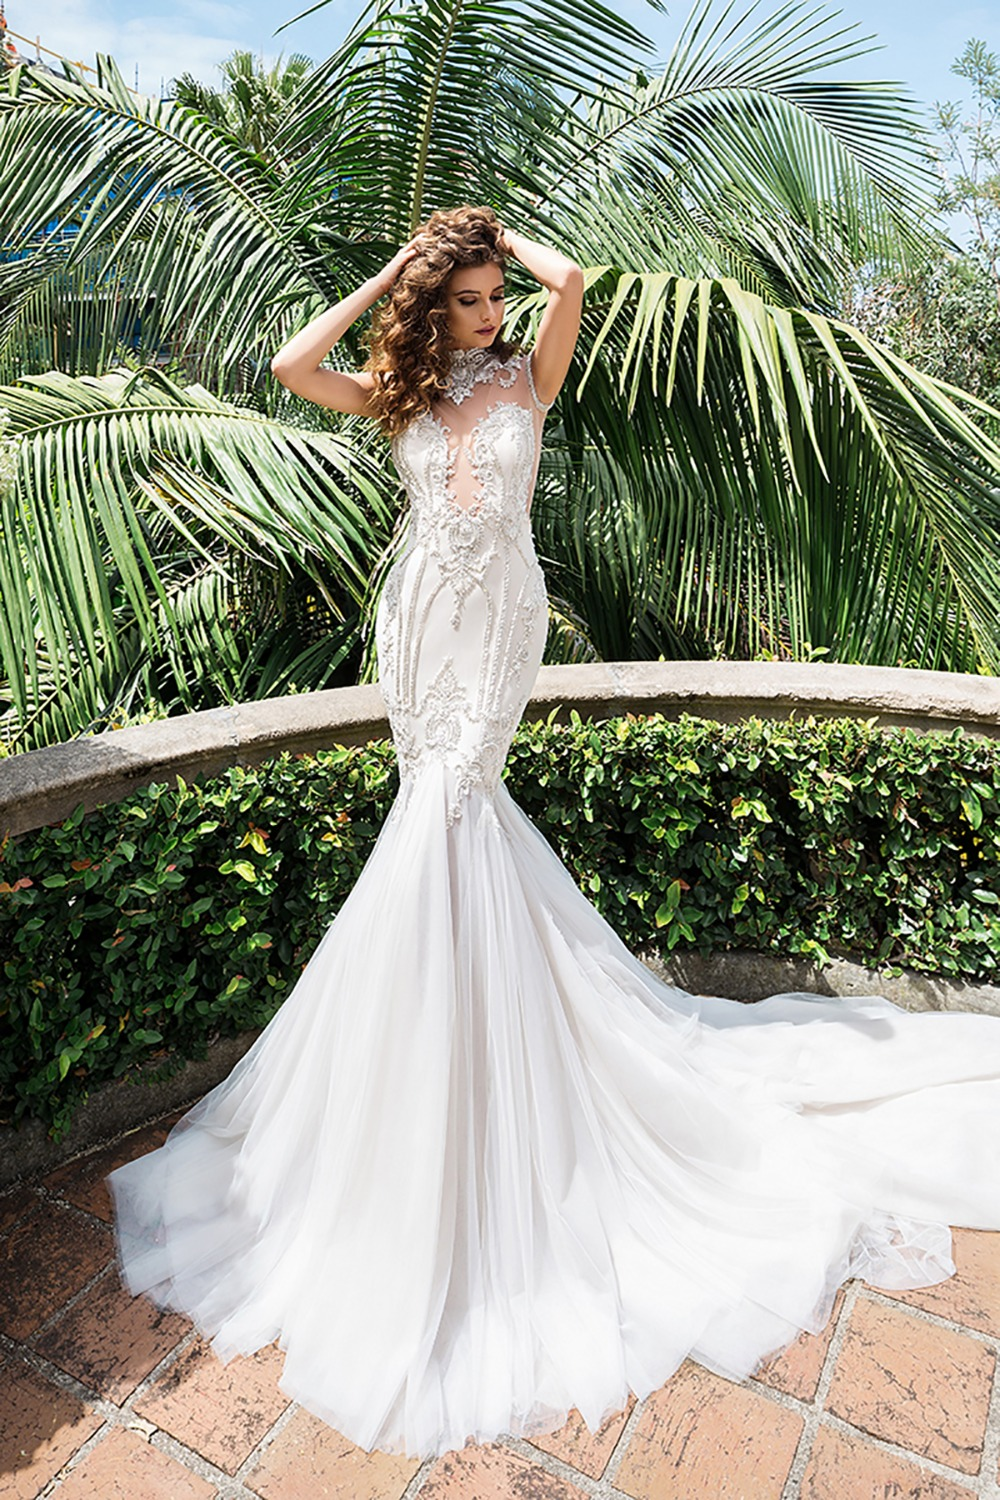 Don't Miss the Leah Da Gloria Trunk Show at Bridal Reflections